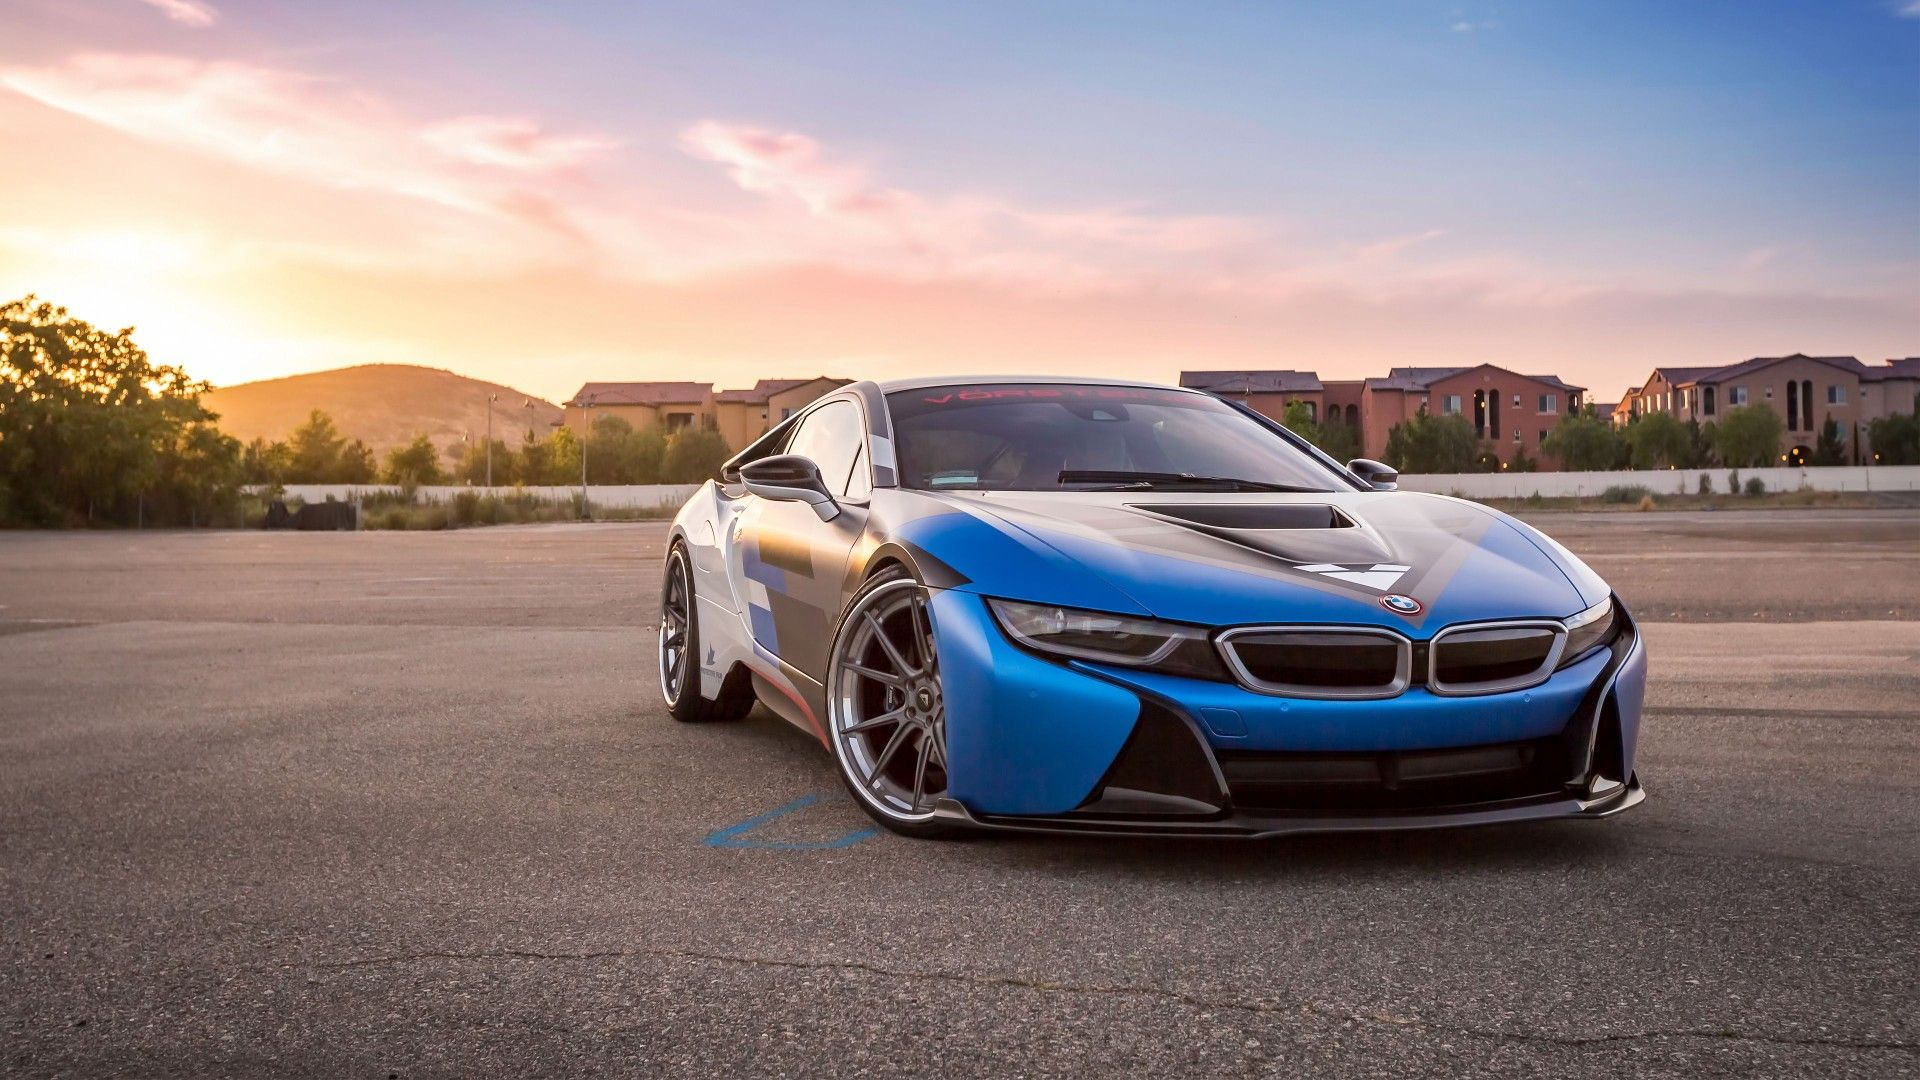 A Volcano Powered Supercar In 2020 Bmw I8 Bmw Car Wallpapers